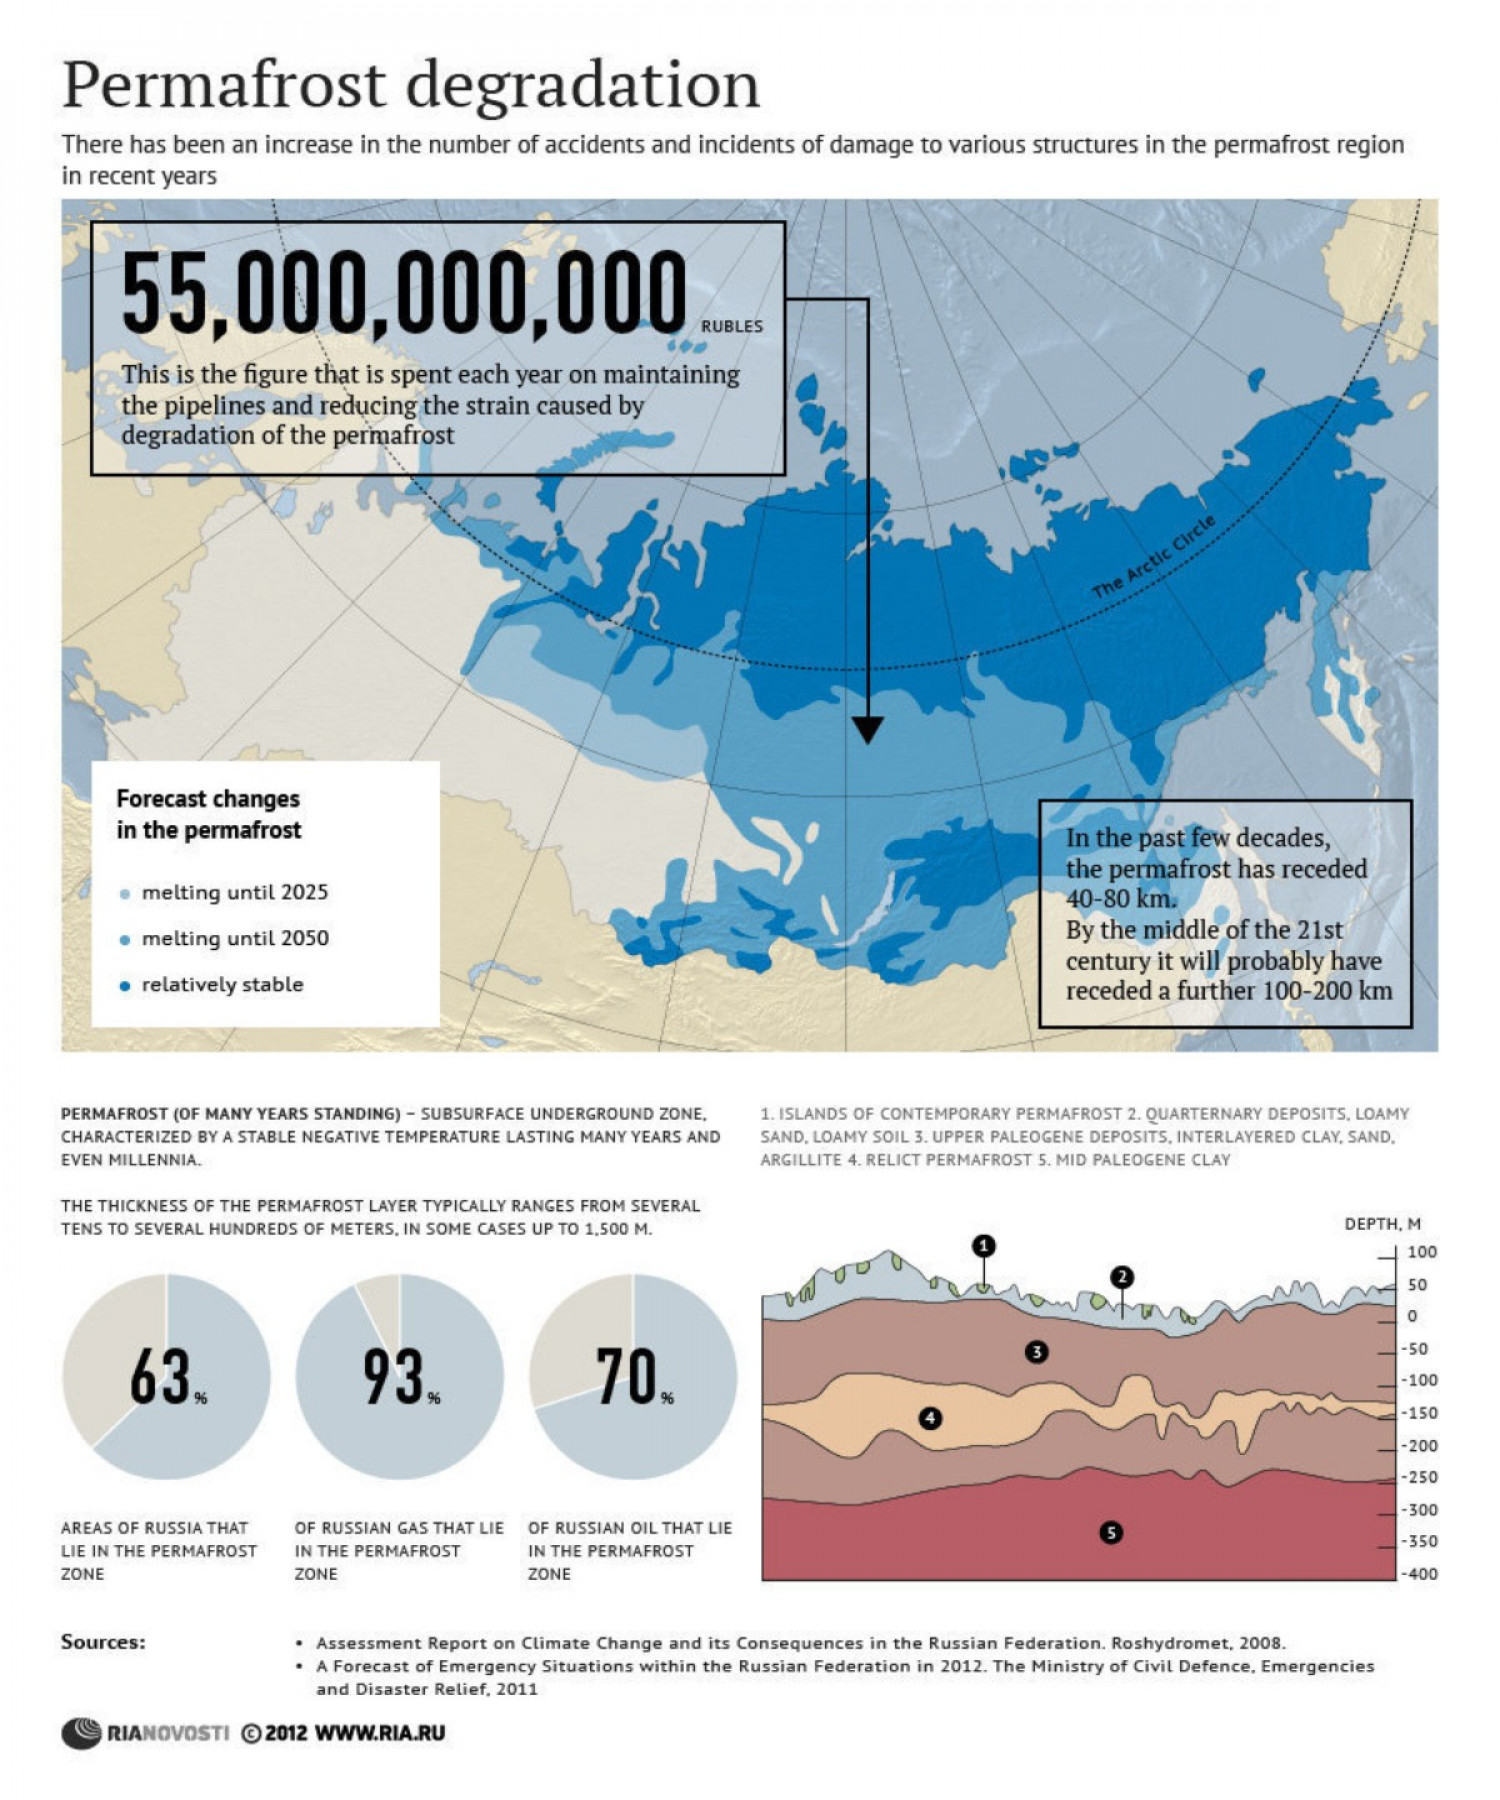 Permafrost Degradation Infographic